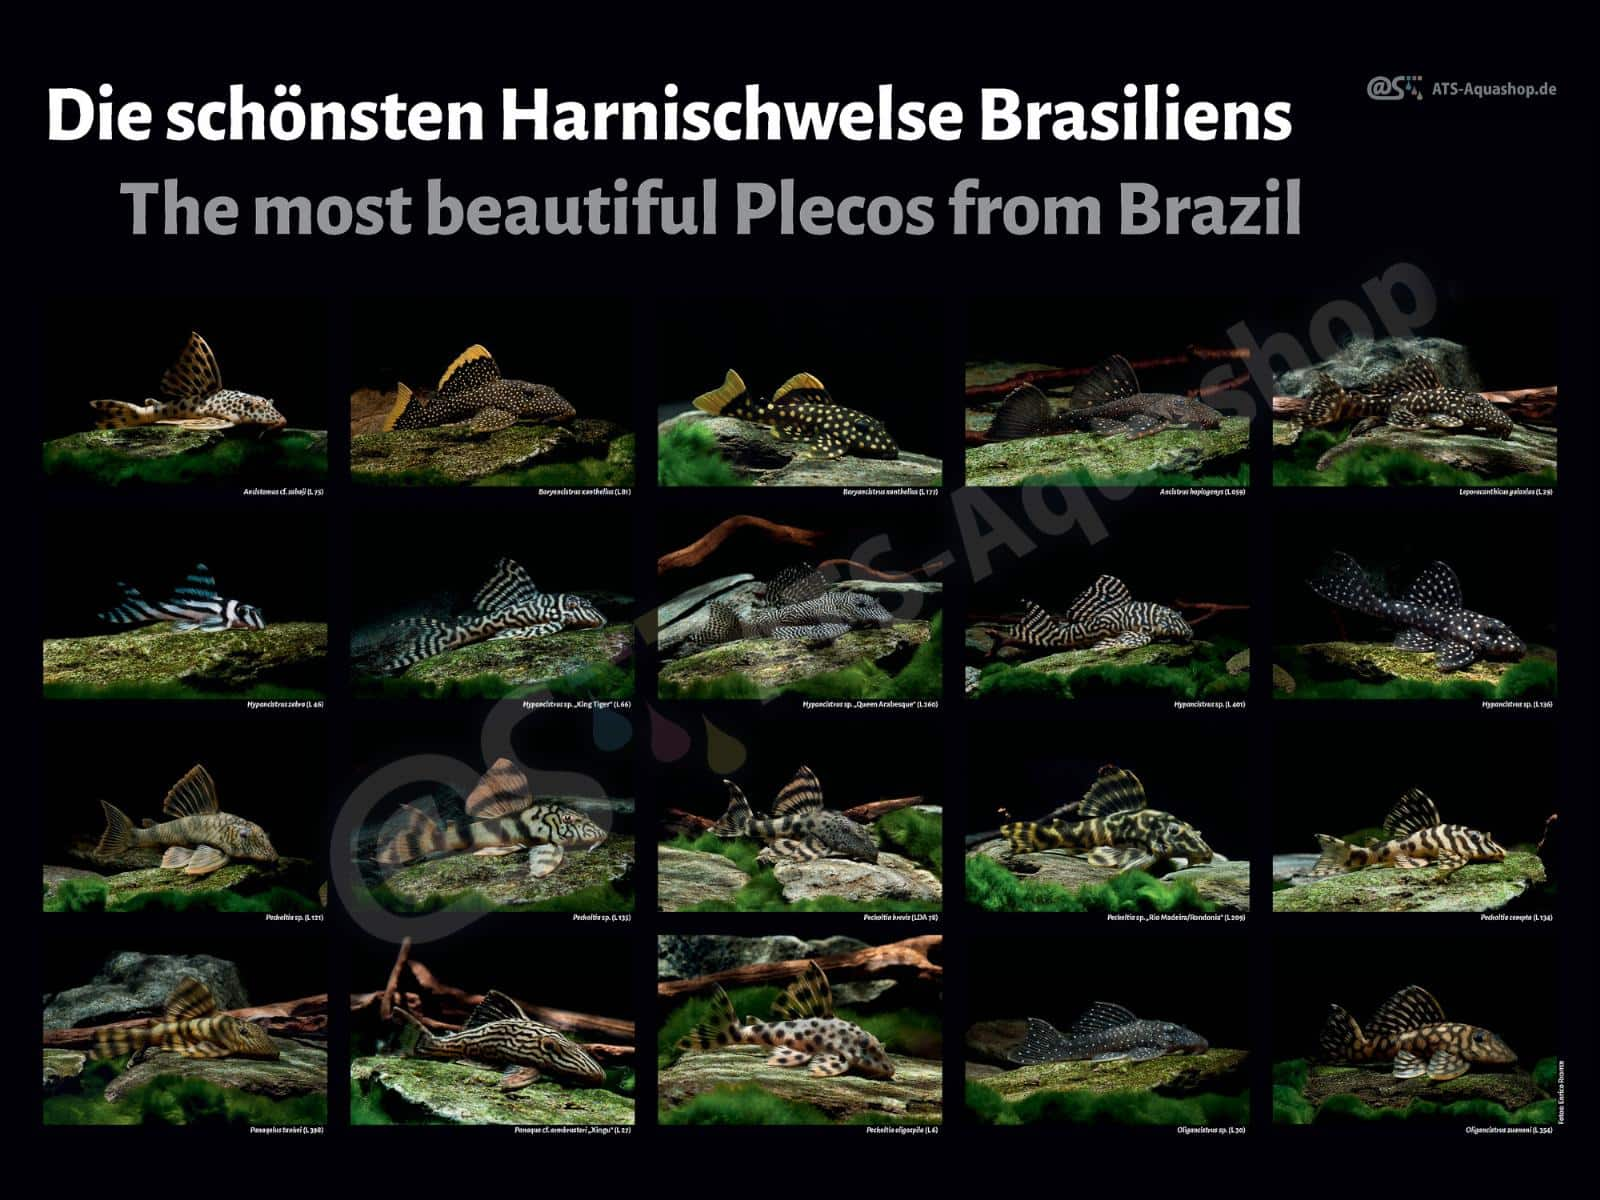 Posters: The most beautiful Plecos from Brazil (Enrico Richter)